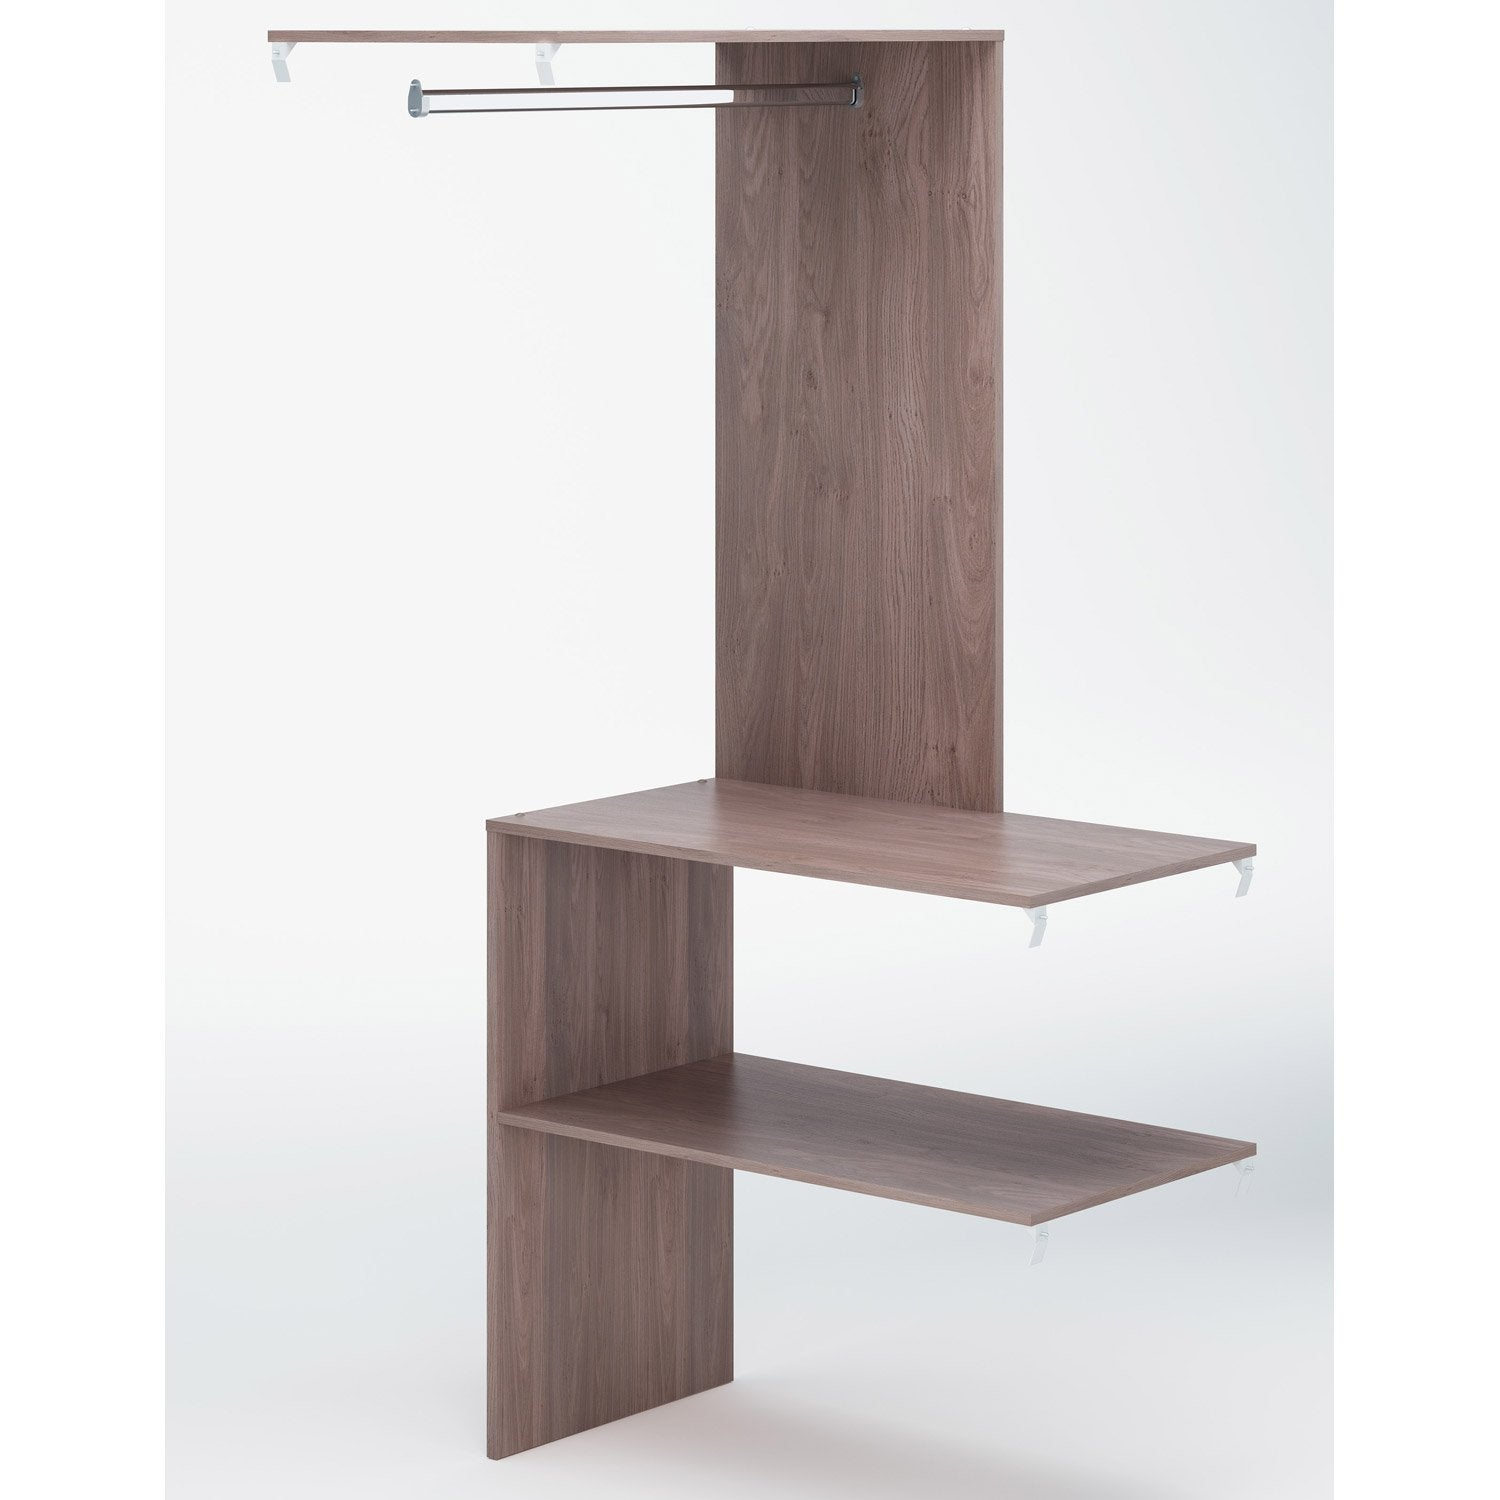 Module d 39 angle avec penderie spaceo dressing 91x193x50 cm ch ne naturel - Dressing angle leroy merlin ...